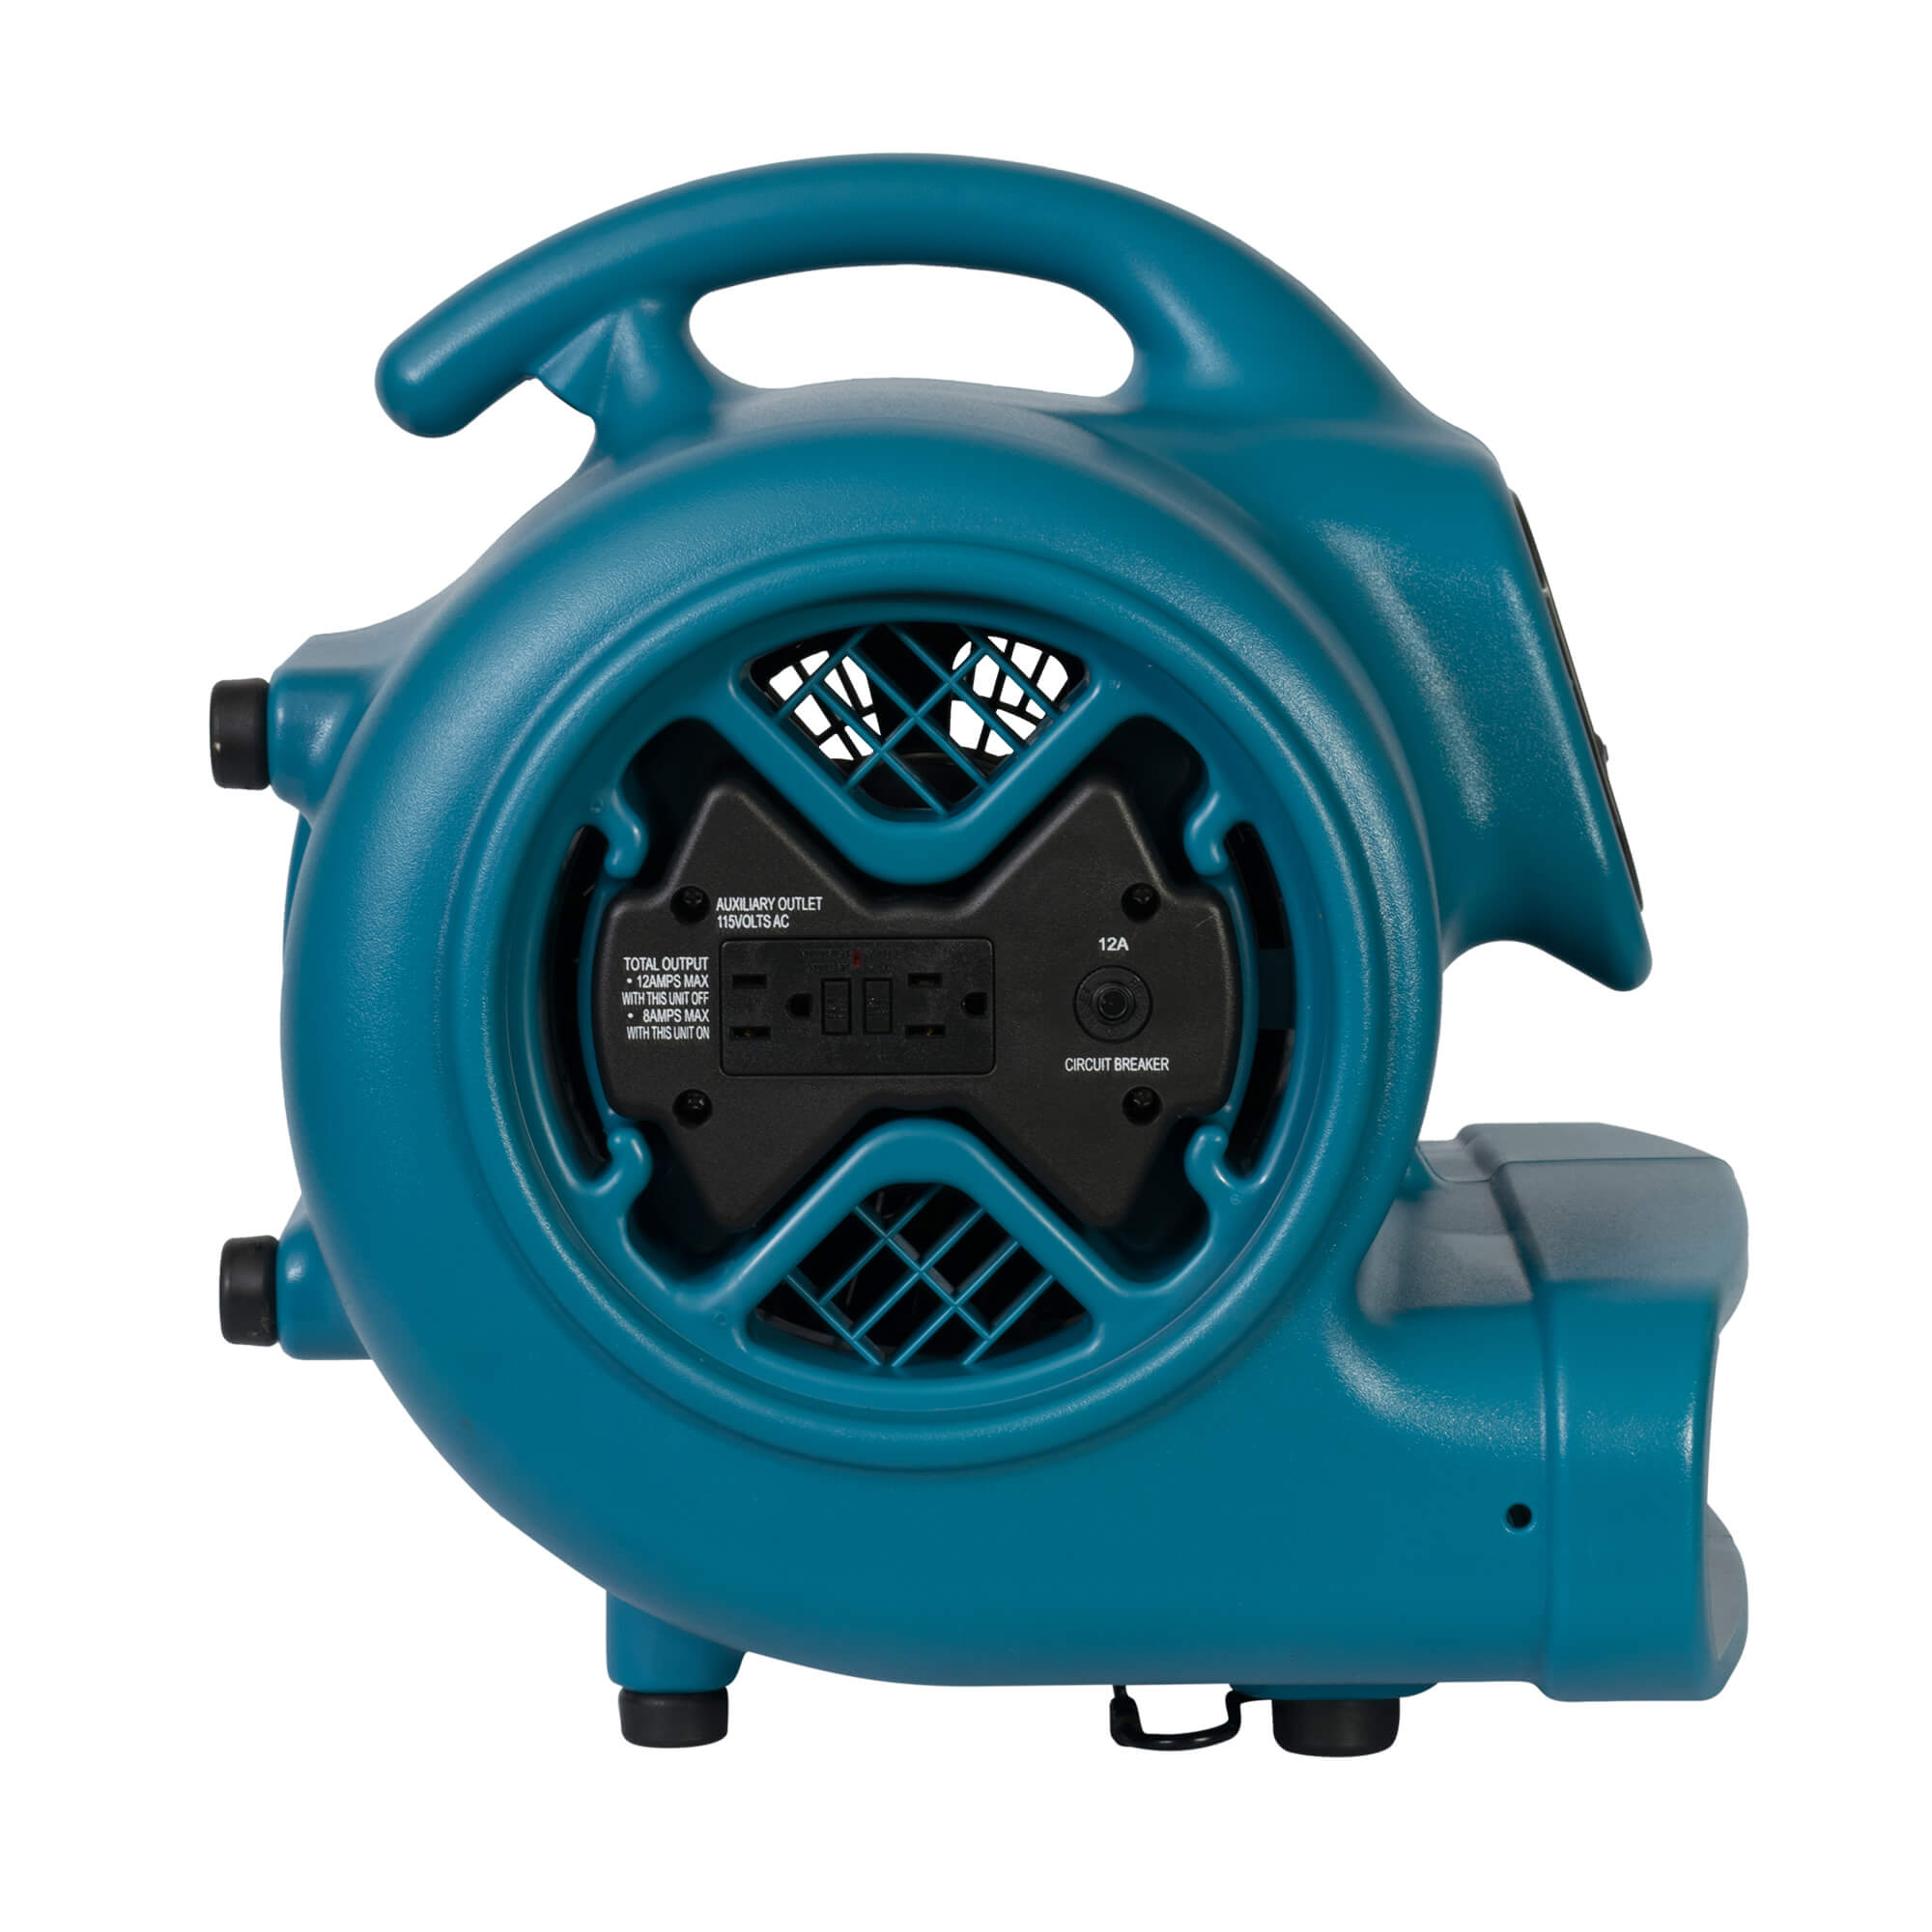 Xpower X 600a 1 3 Hp Air Mover Dryer Floor Fan Blower With Build Power Max 400 Wiring Diagram In Gfci Outlets